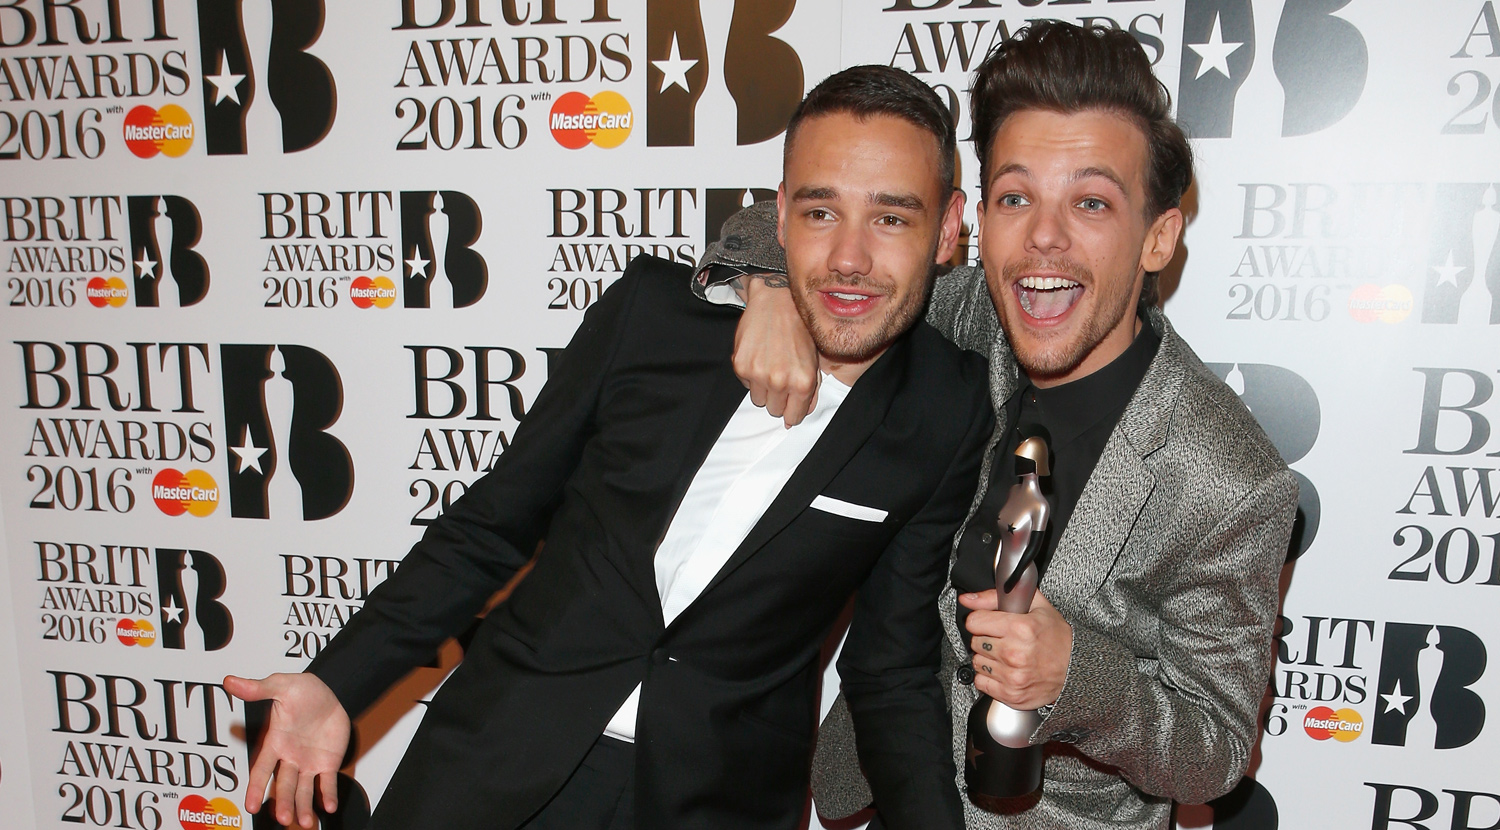 Liam Payne Gives Shout-Out to Louis Tomlinson Before First Solo Headline Show